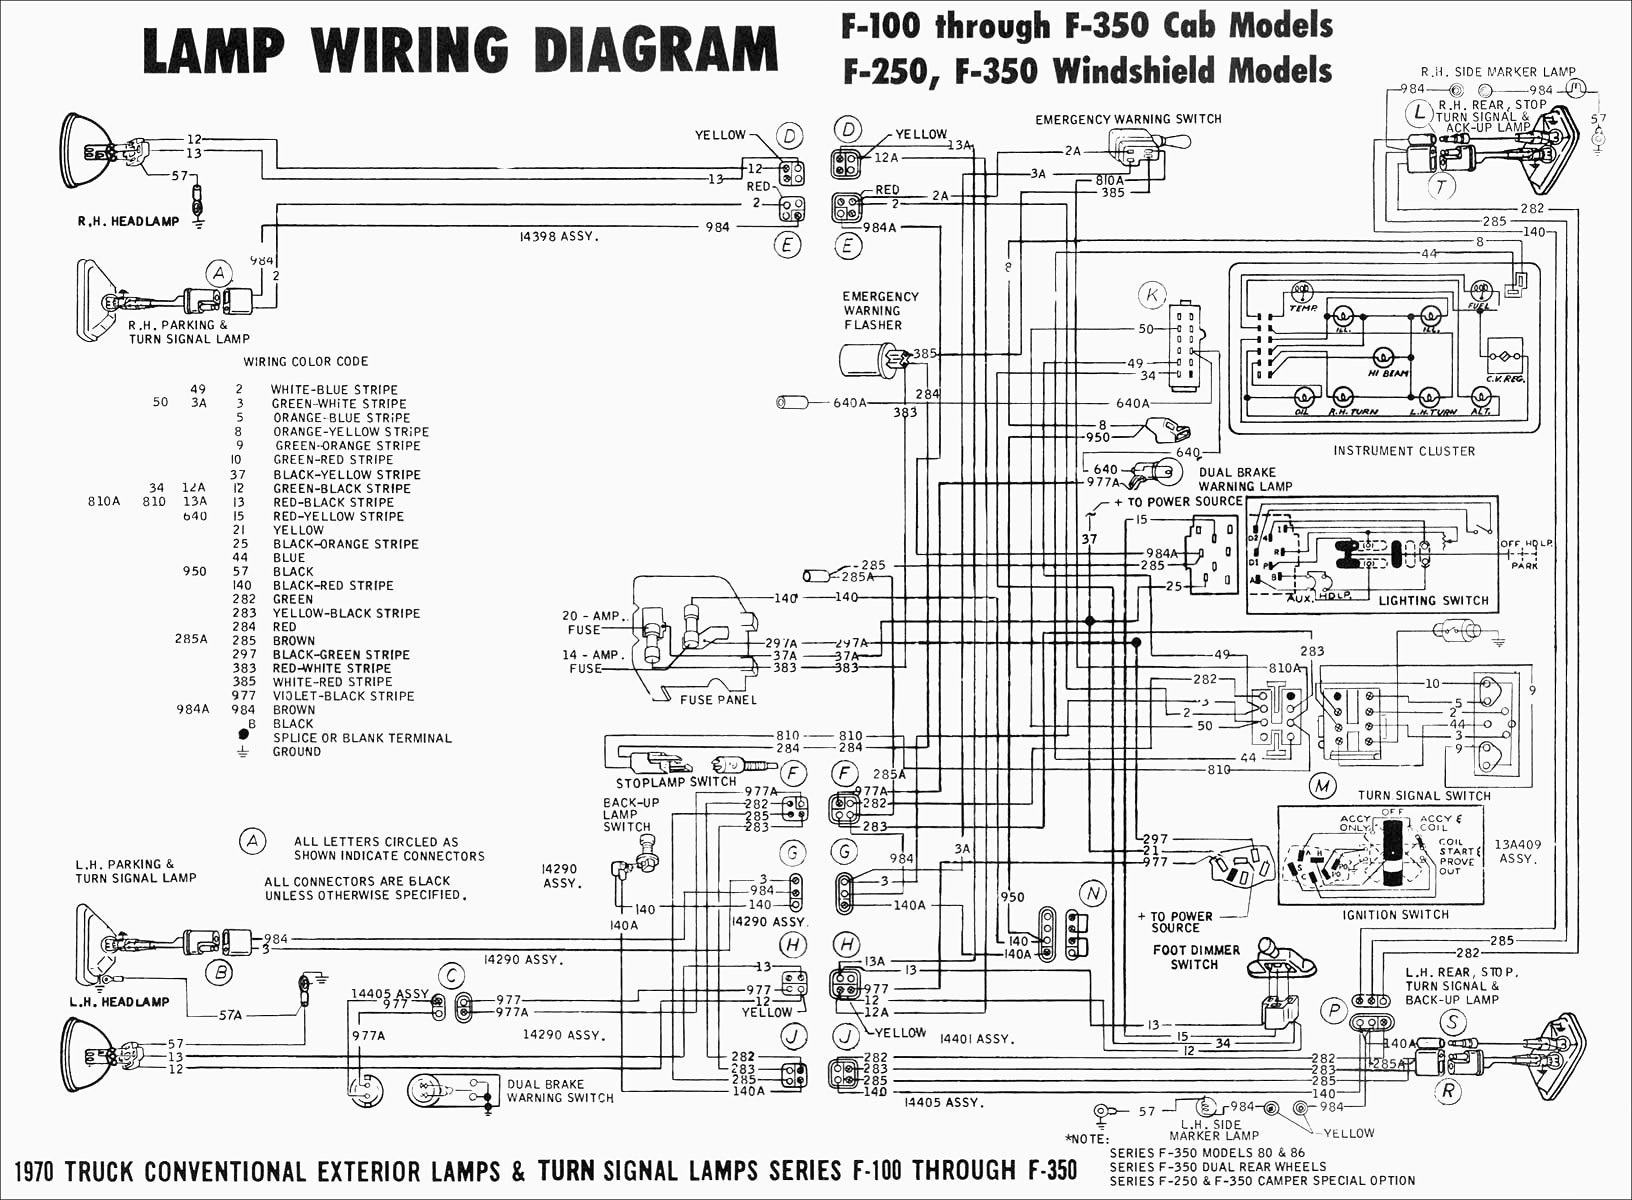 2000 Chevy Silverado Brake Light Switch Wiring Diagram Ke Jeep Grand Cherokee Image